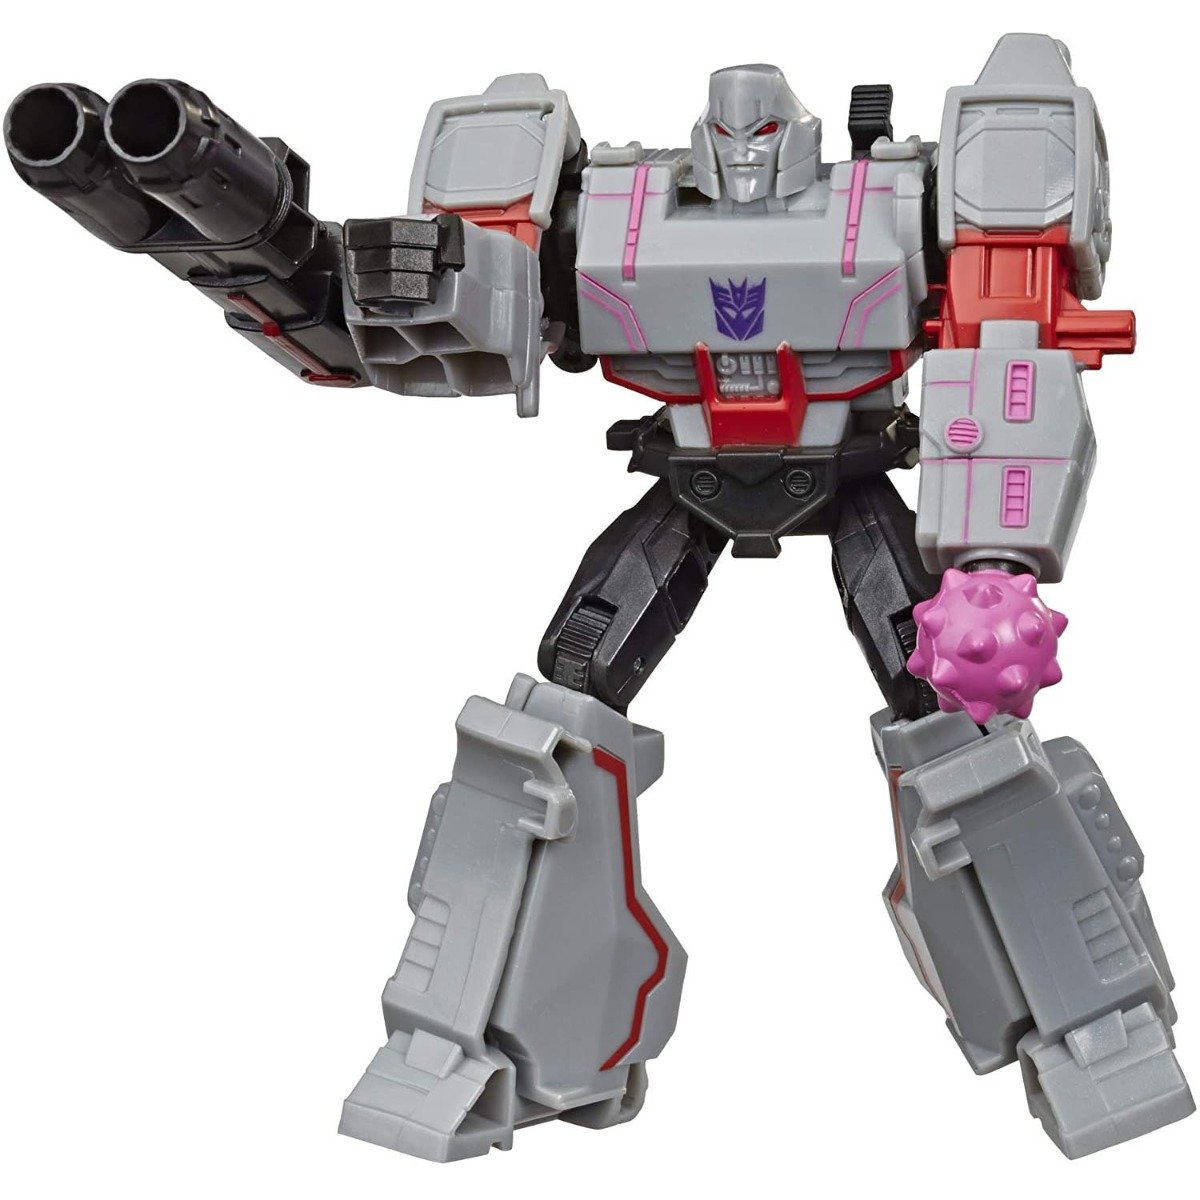 Figurina Transformers Cyberverse Action Attackers Warrior, Megatron E7087